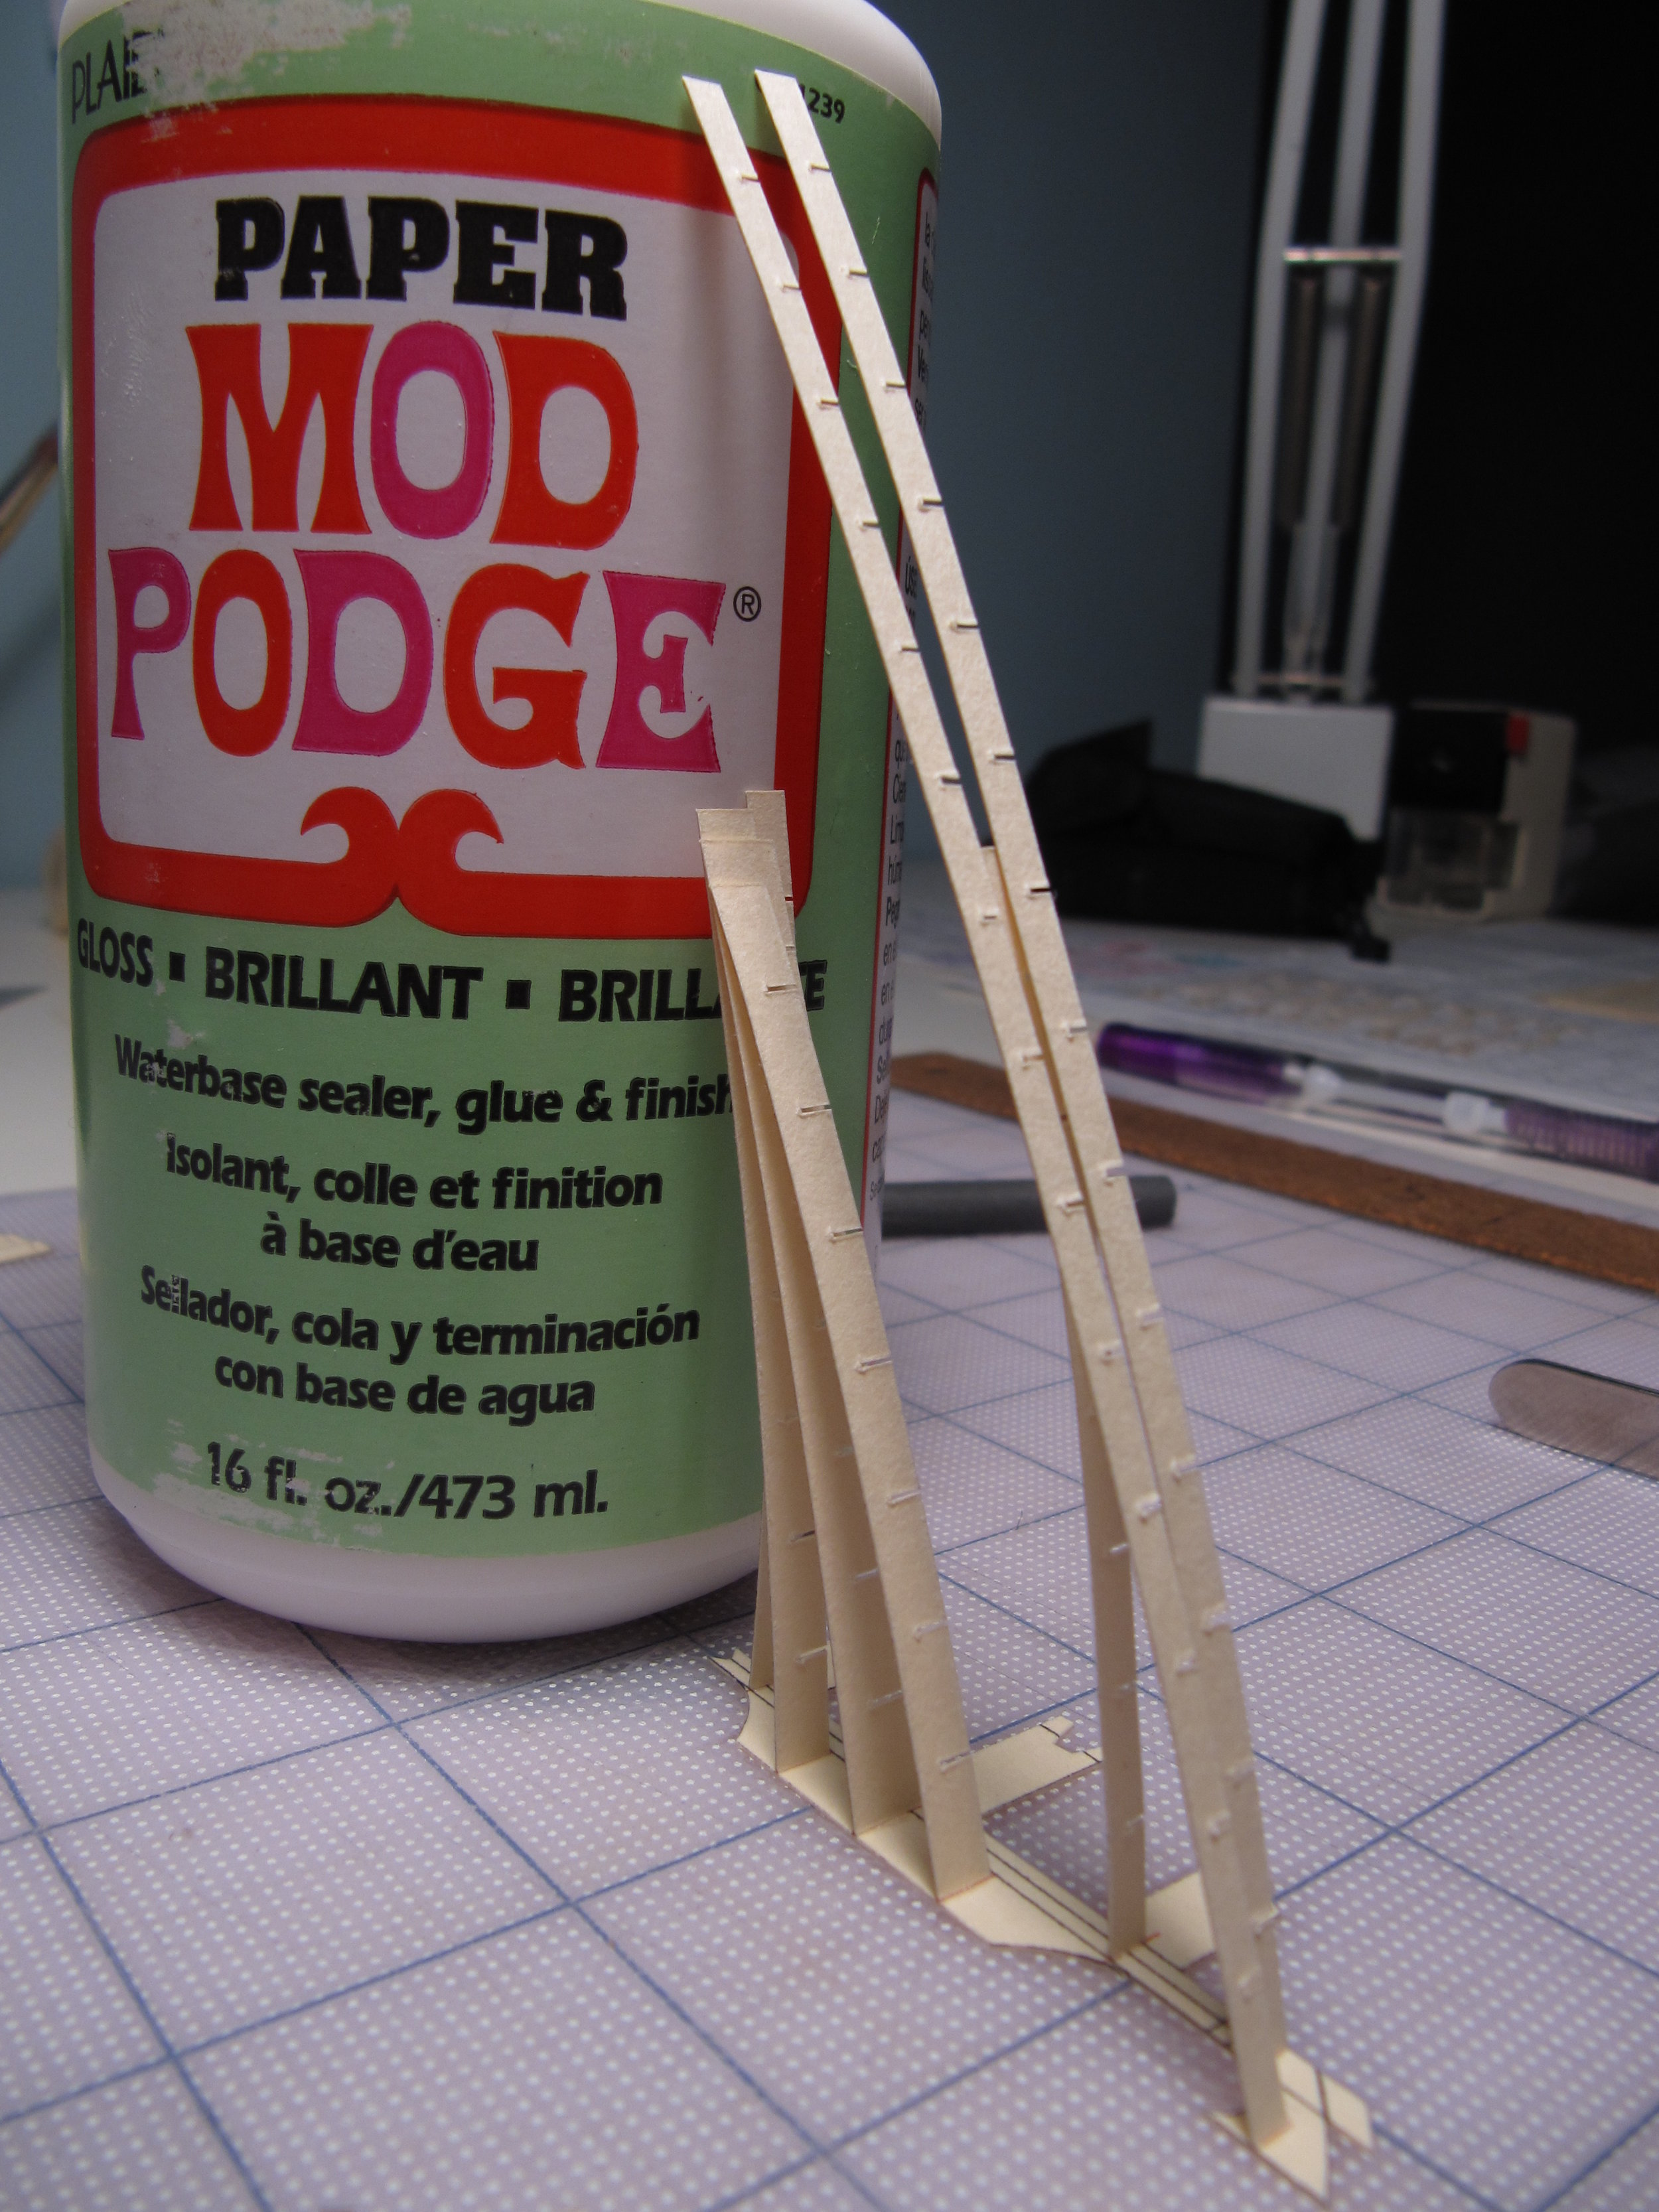 Mod Podge , which I used to create the gloss effect on the fuselage